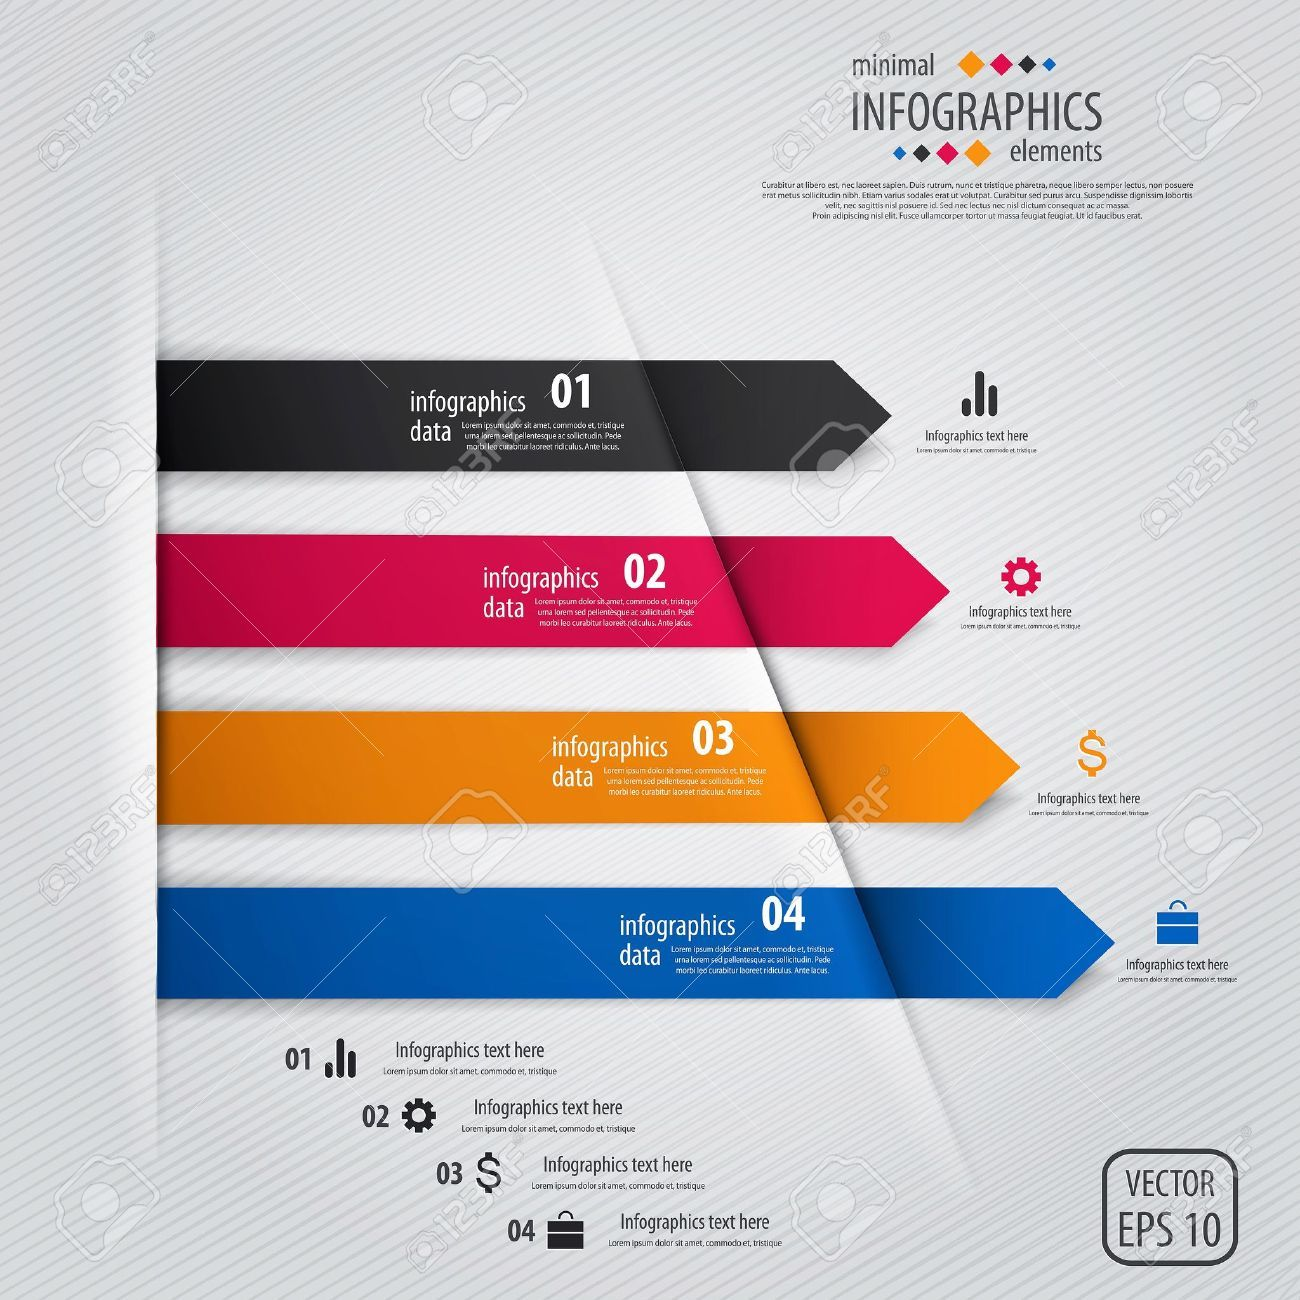 infographic design graph google search infographic pinterest infographic. Black Bedroom Furniture Sets. Home Design Ideas